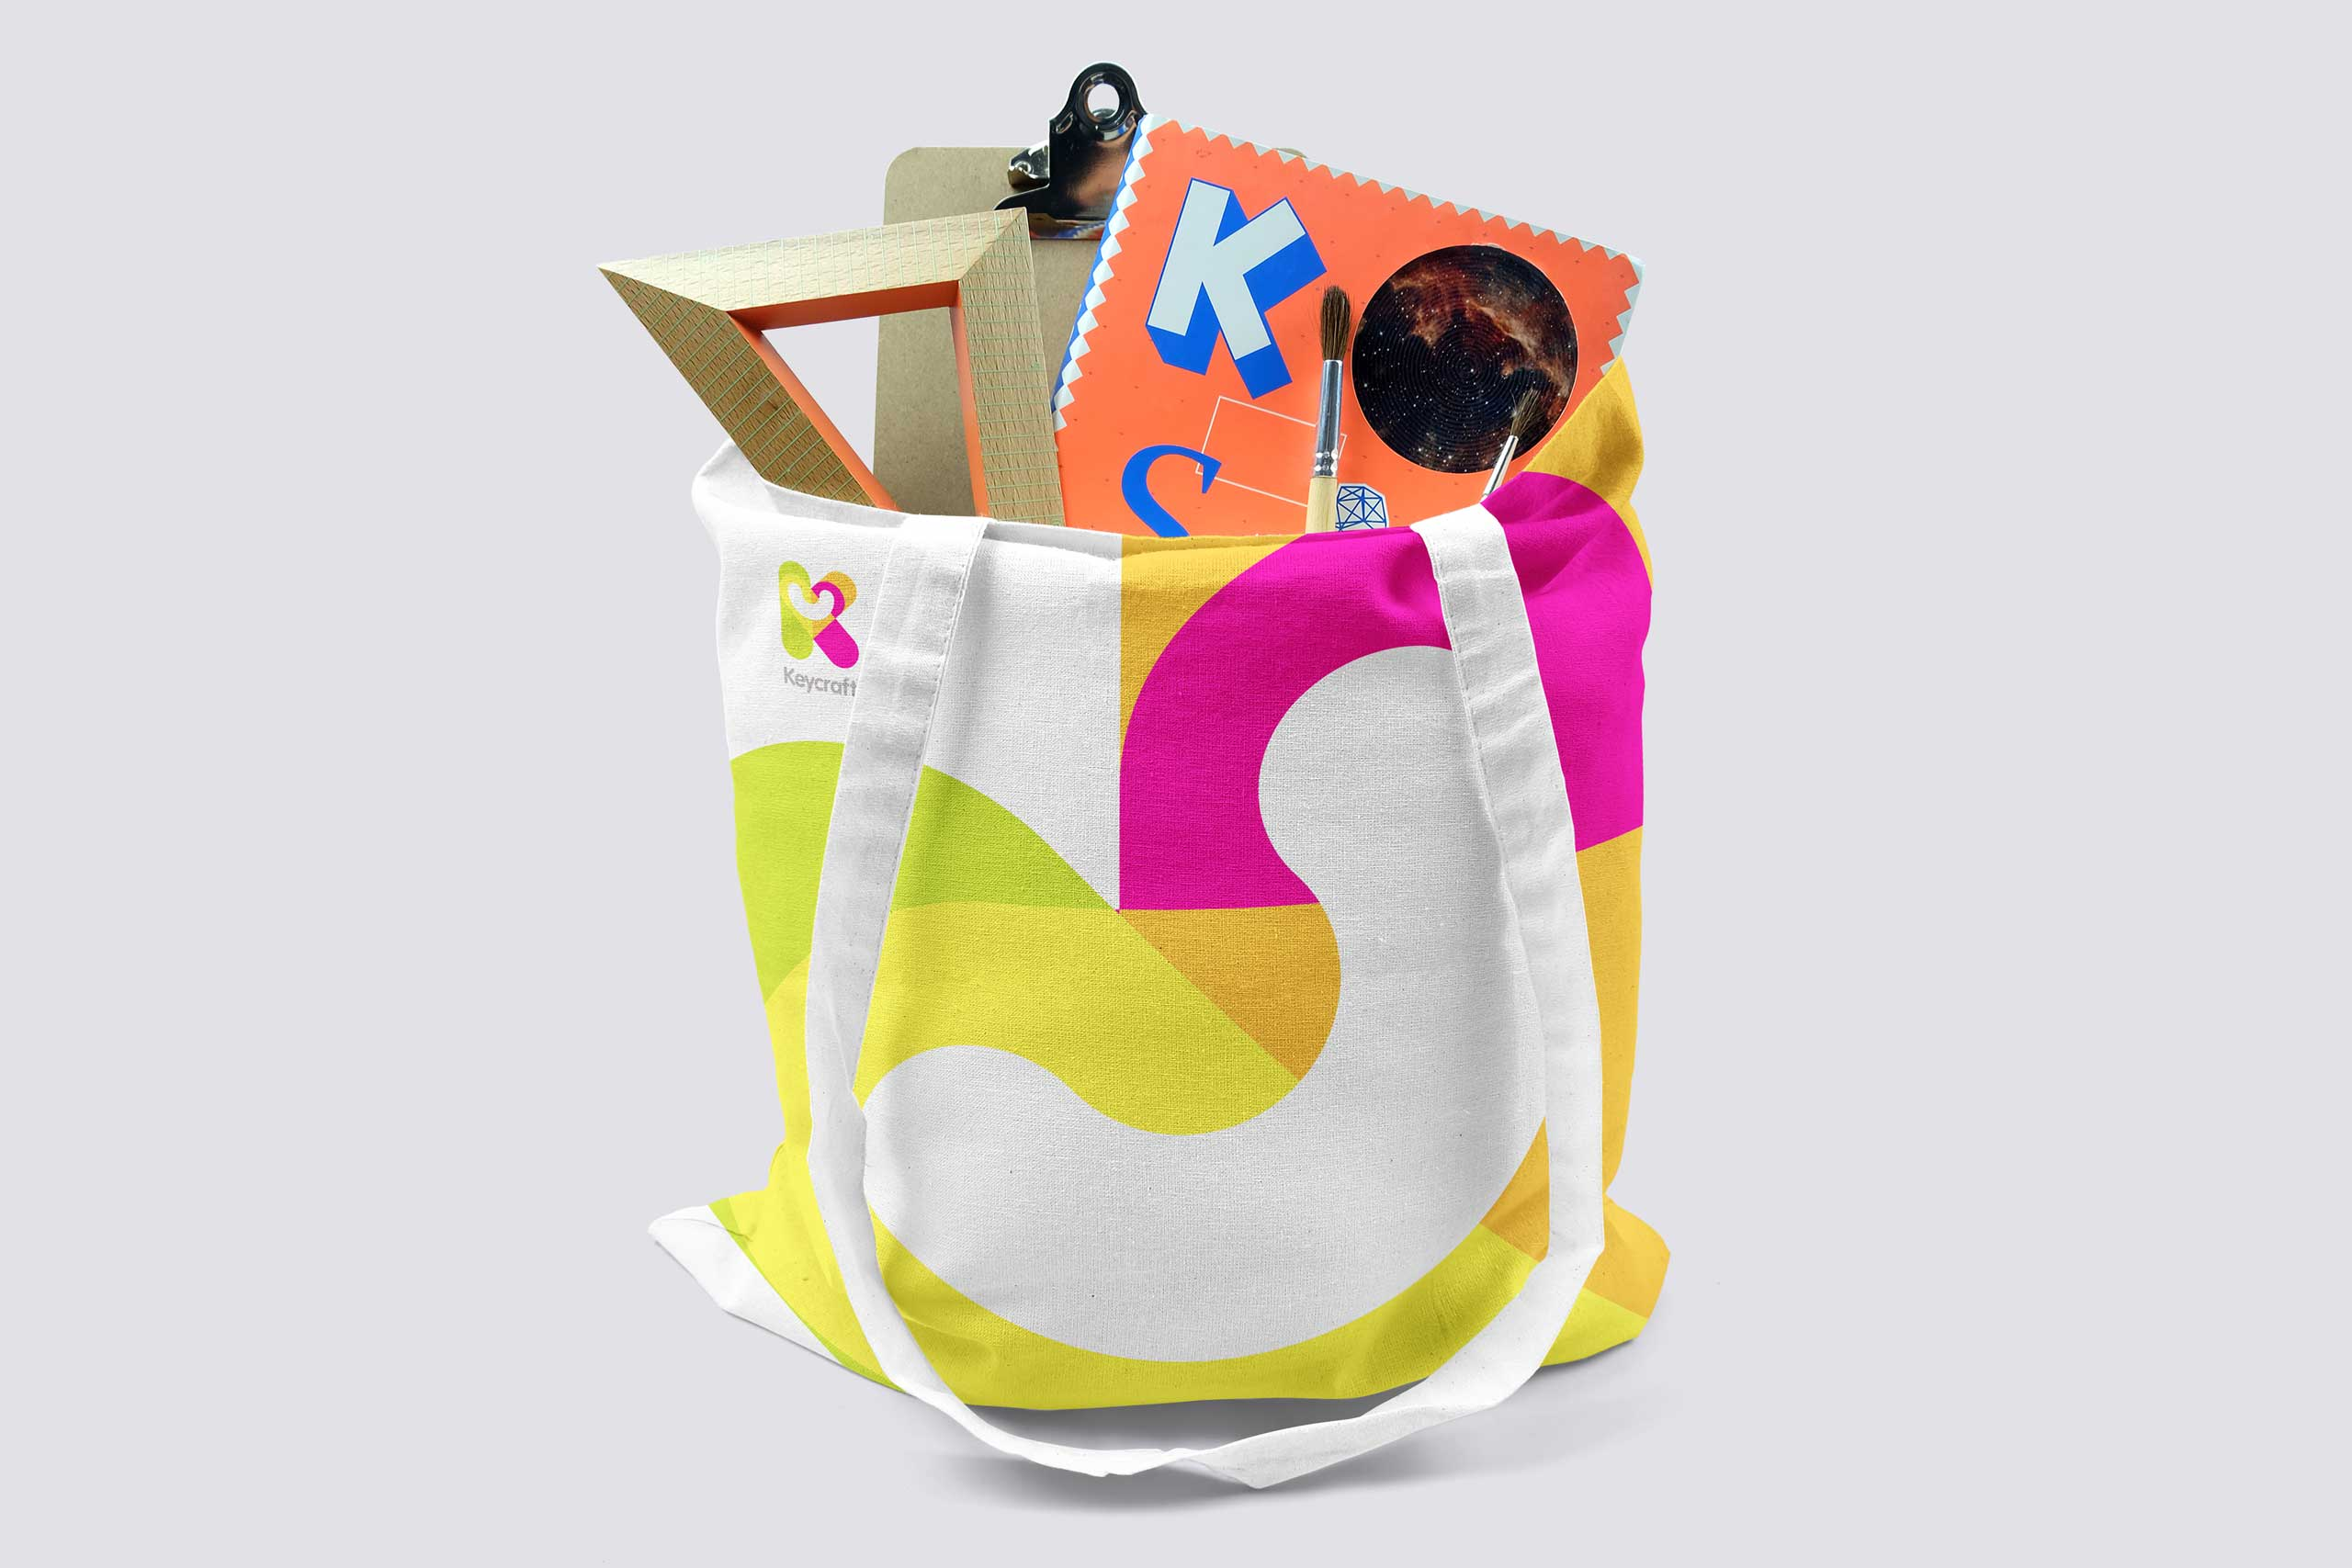 tote bag for keycraft toys branding